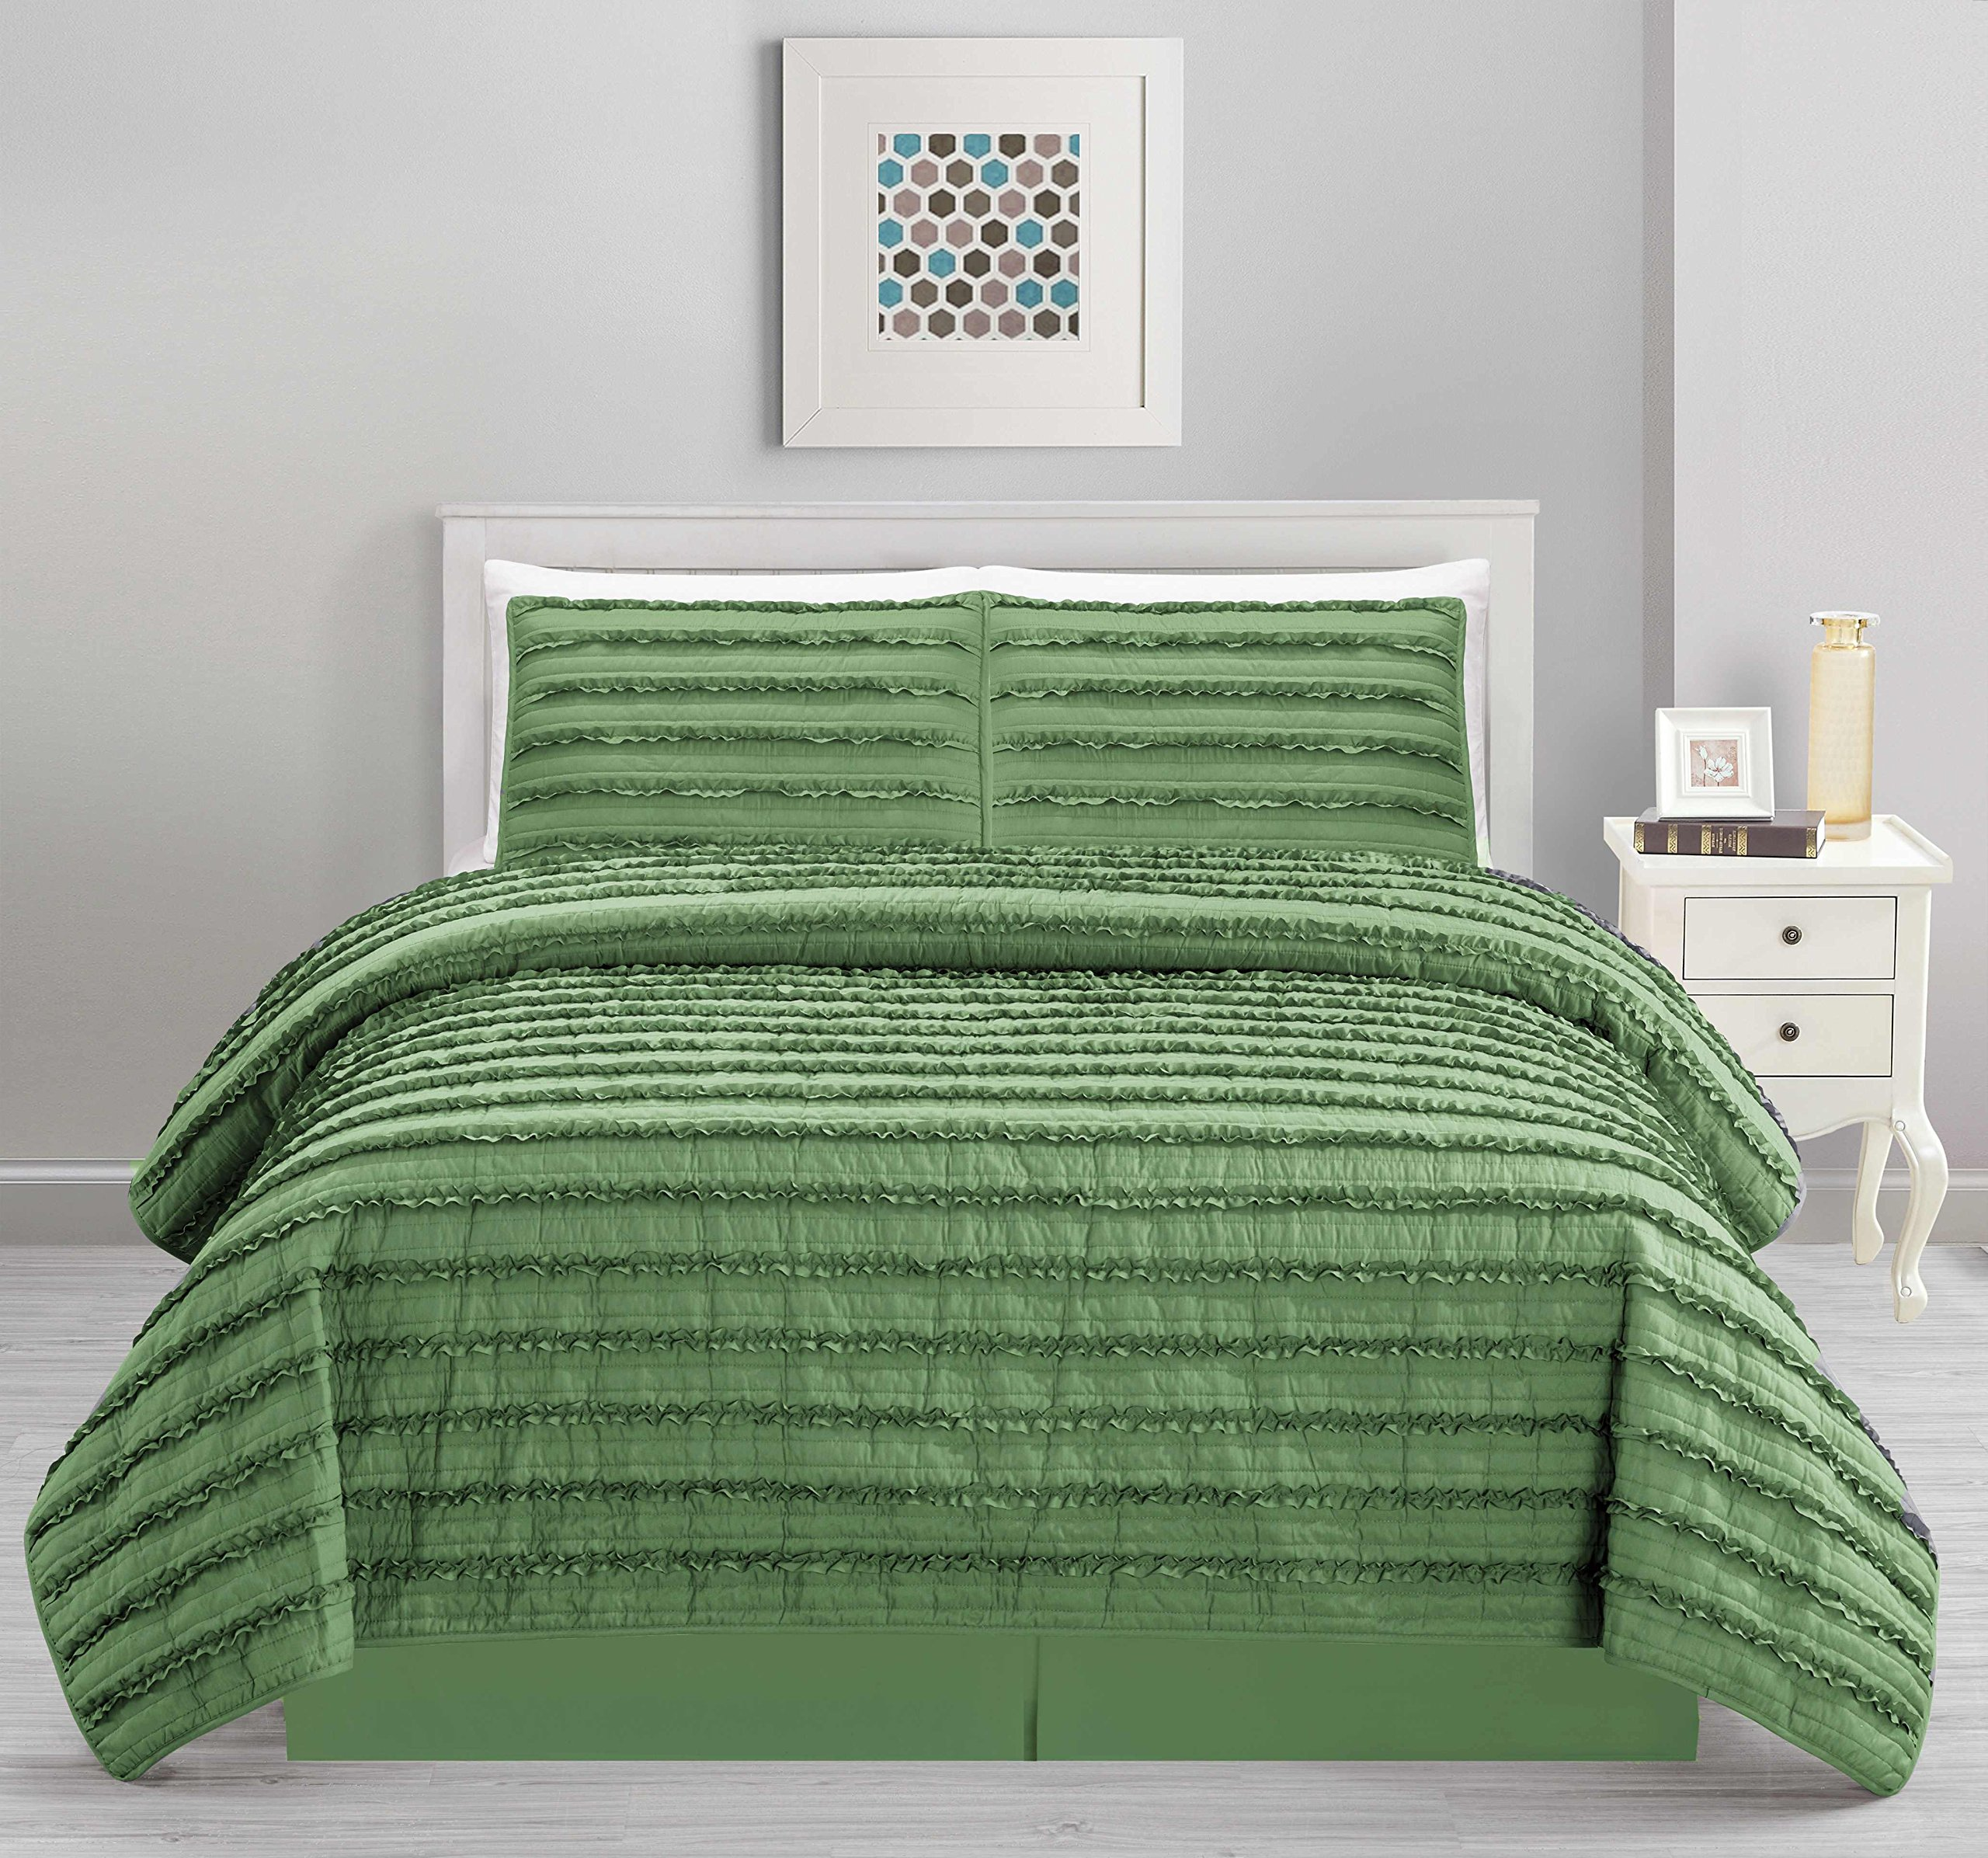 All American Collection New 4pc Pleated Ruffle Bedspread/Quilt Set with Bedskirt (Queen Size, Sage Green)